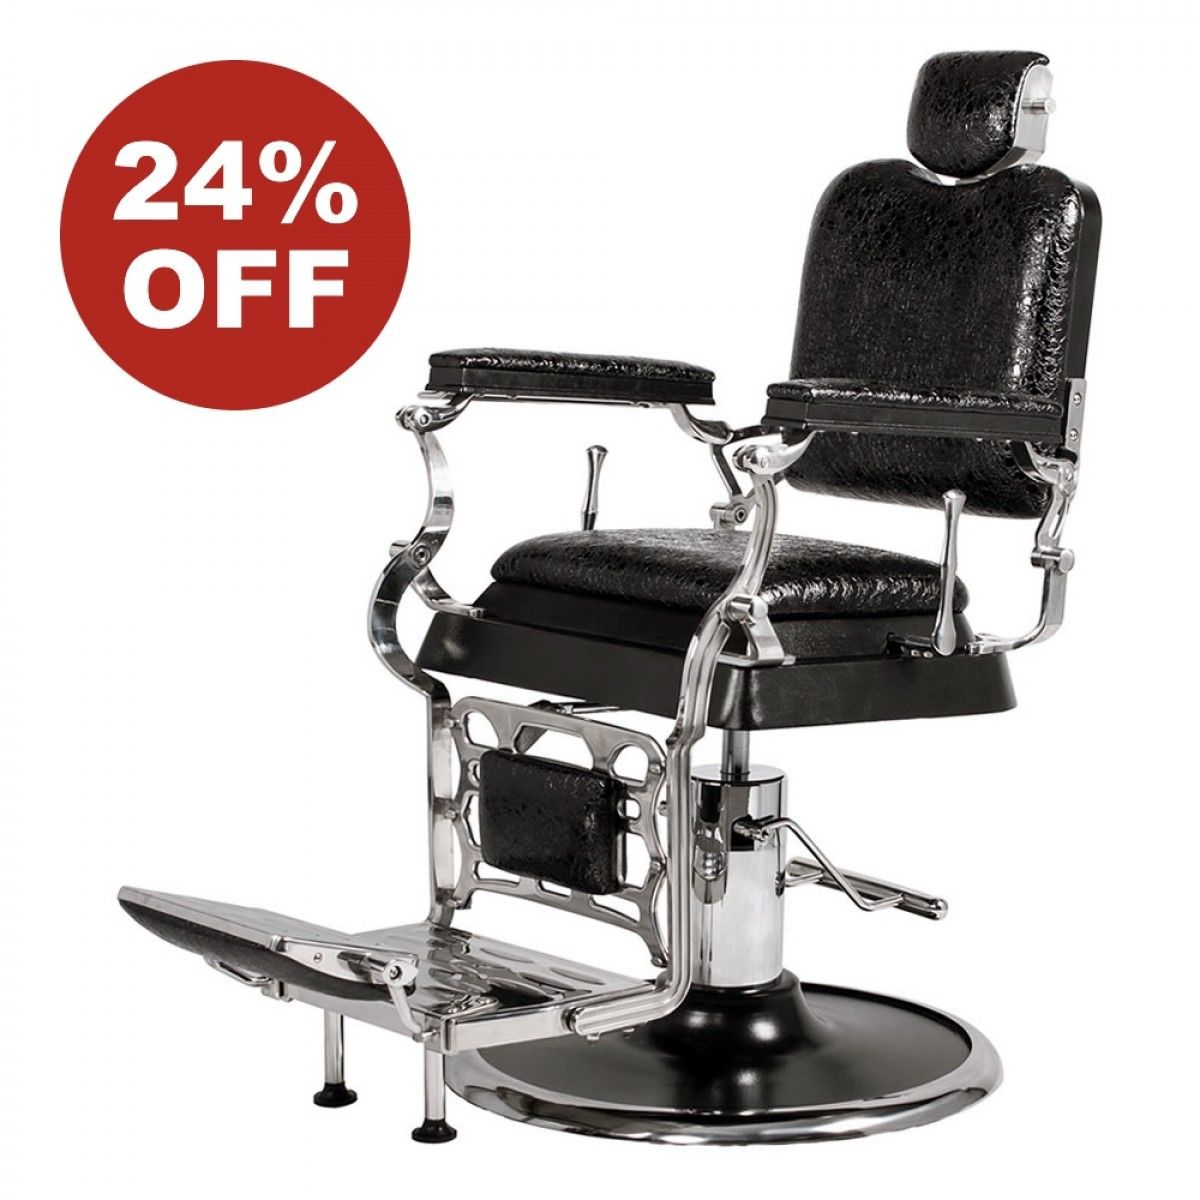 Agsbeauty Agssalonequipment Emperor Antique Barber Chair For